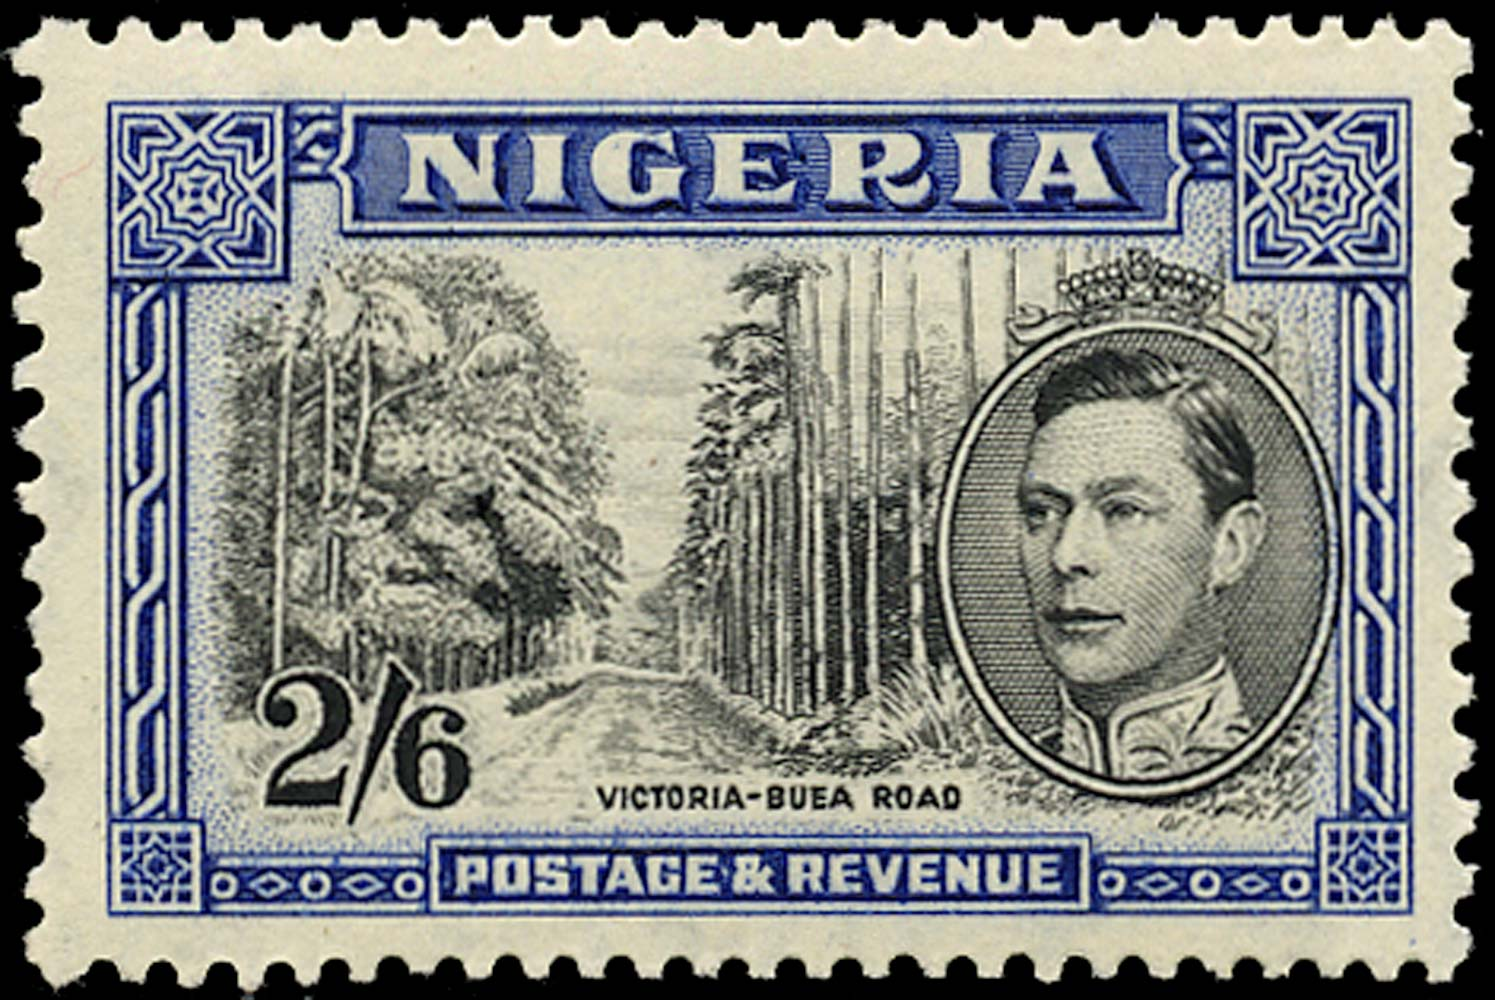 NIGERIA 1938  SG58 Mint 2s6d black and blue perf 13x11½ unmounted